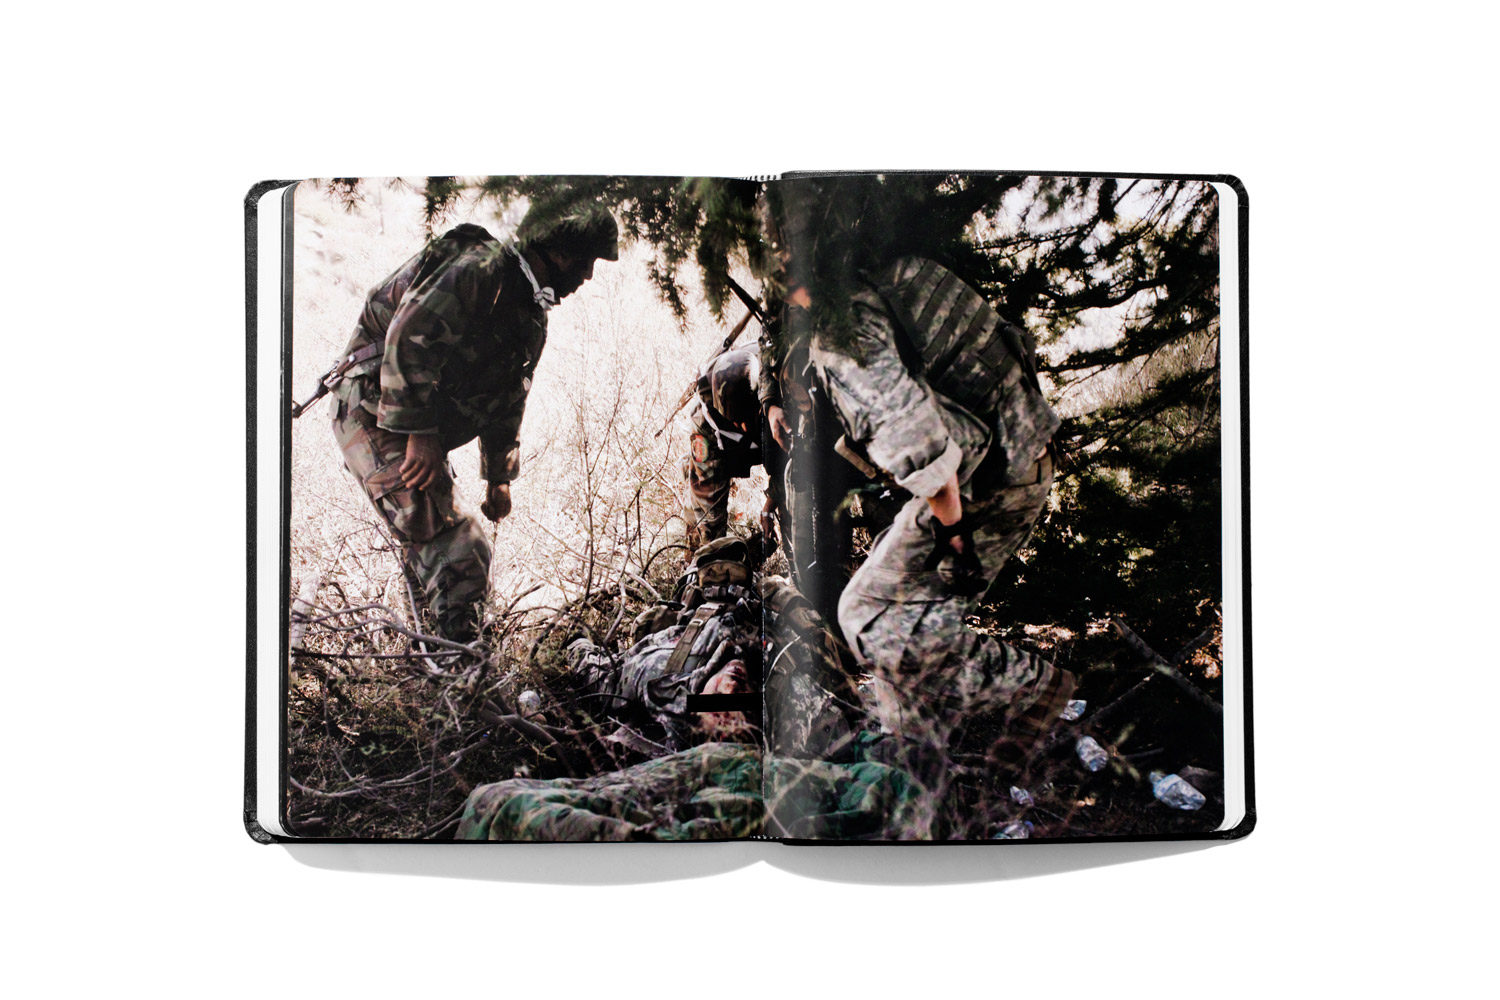 Larry Rougle from Tim Hetherington's 2010 book Infidel. Hetherington mentions his photographs from Afghanistan in the essay below.